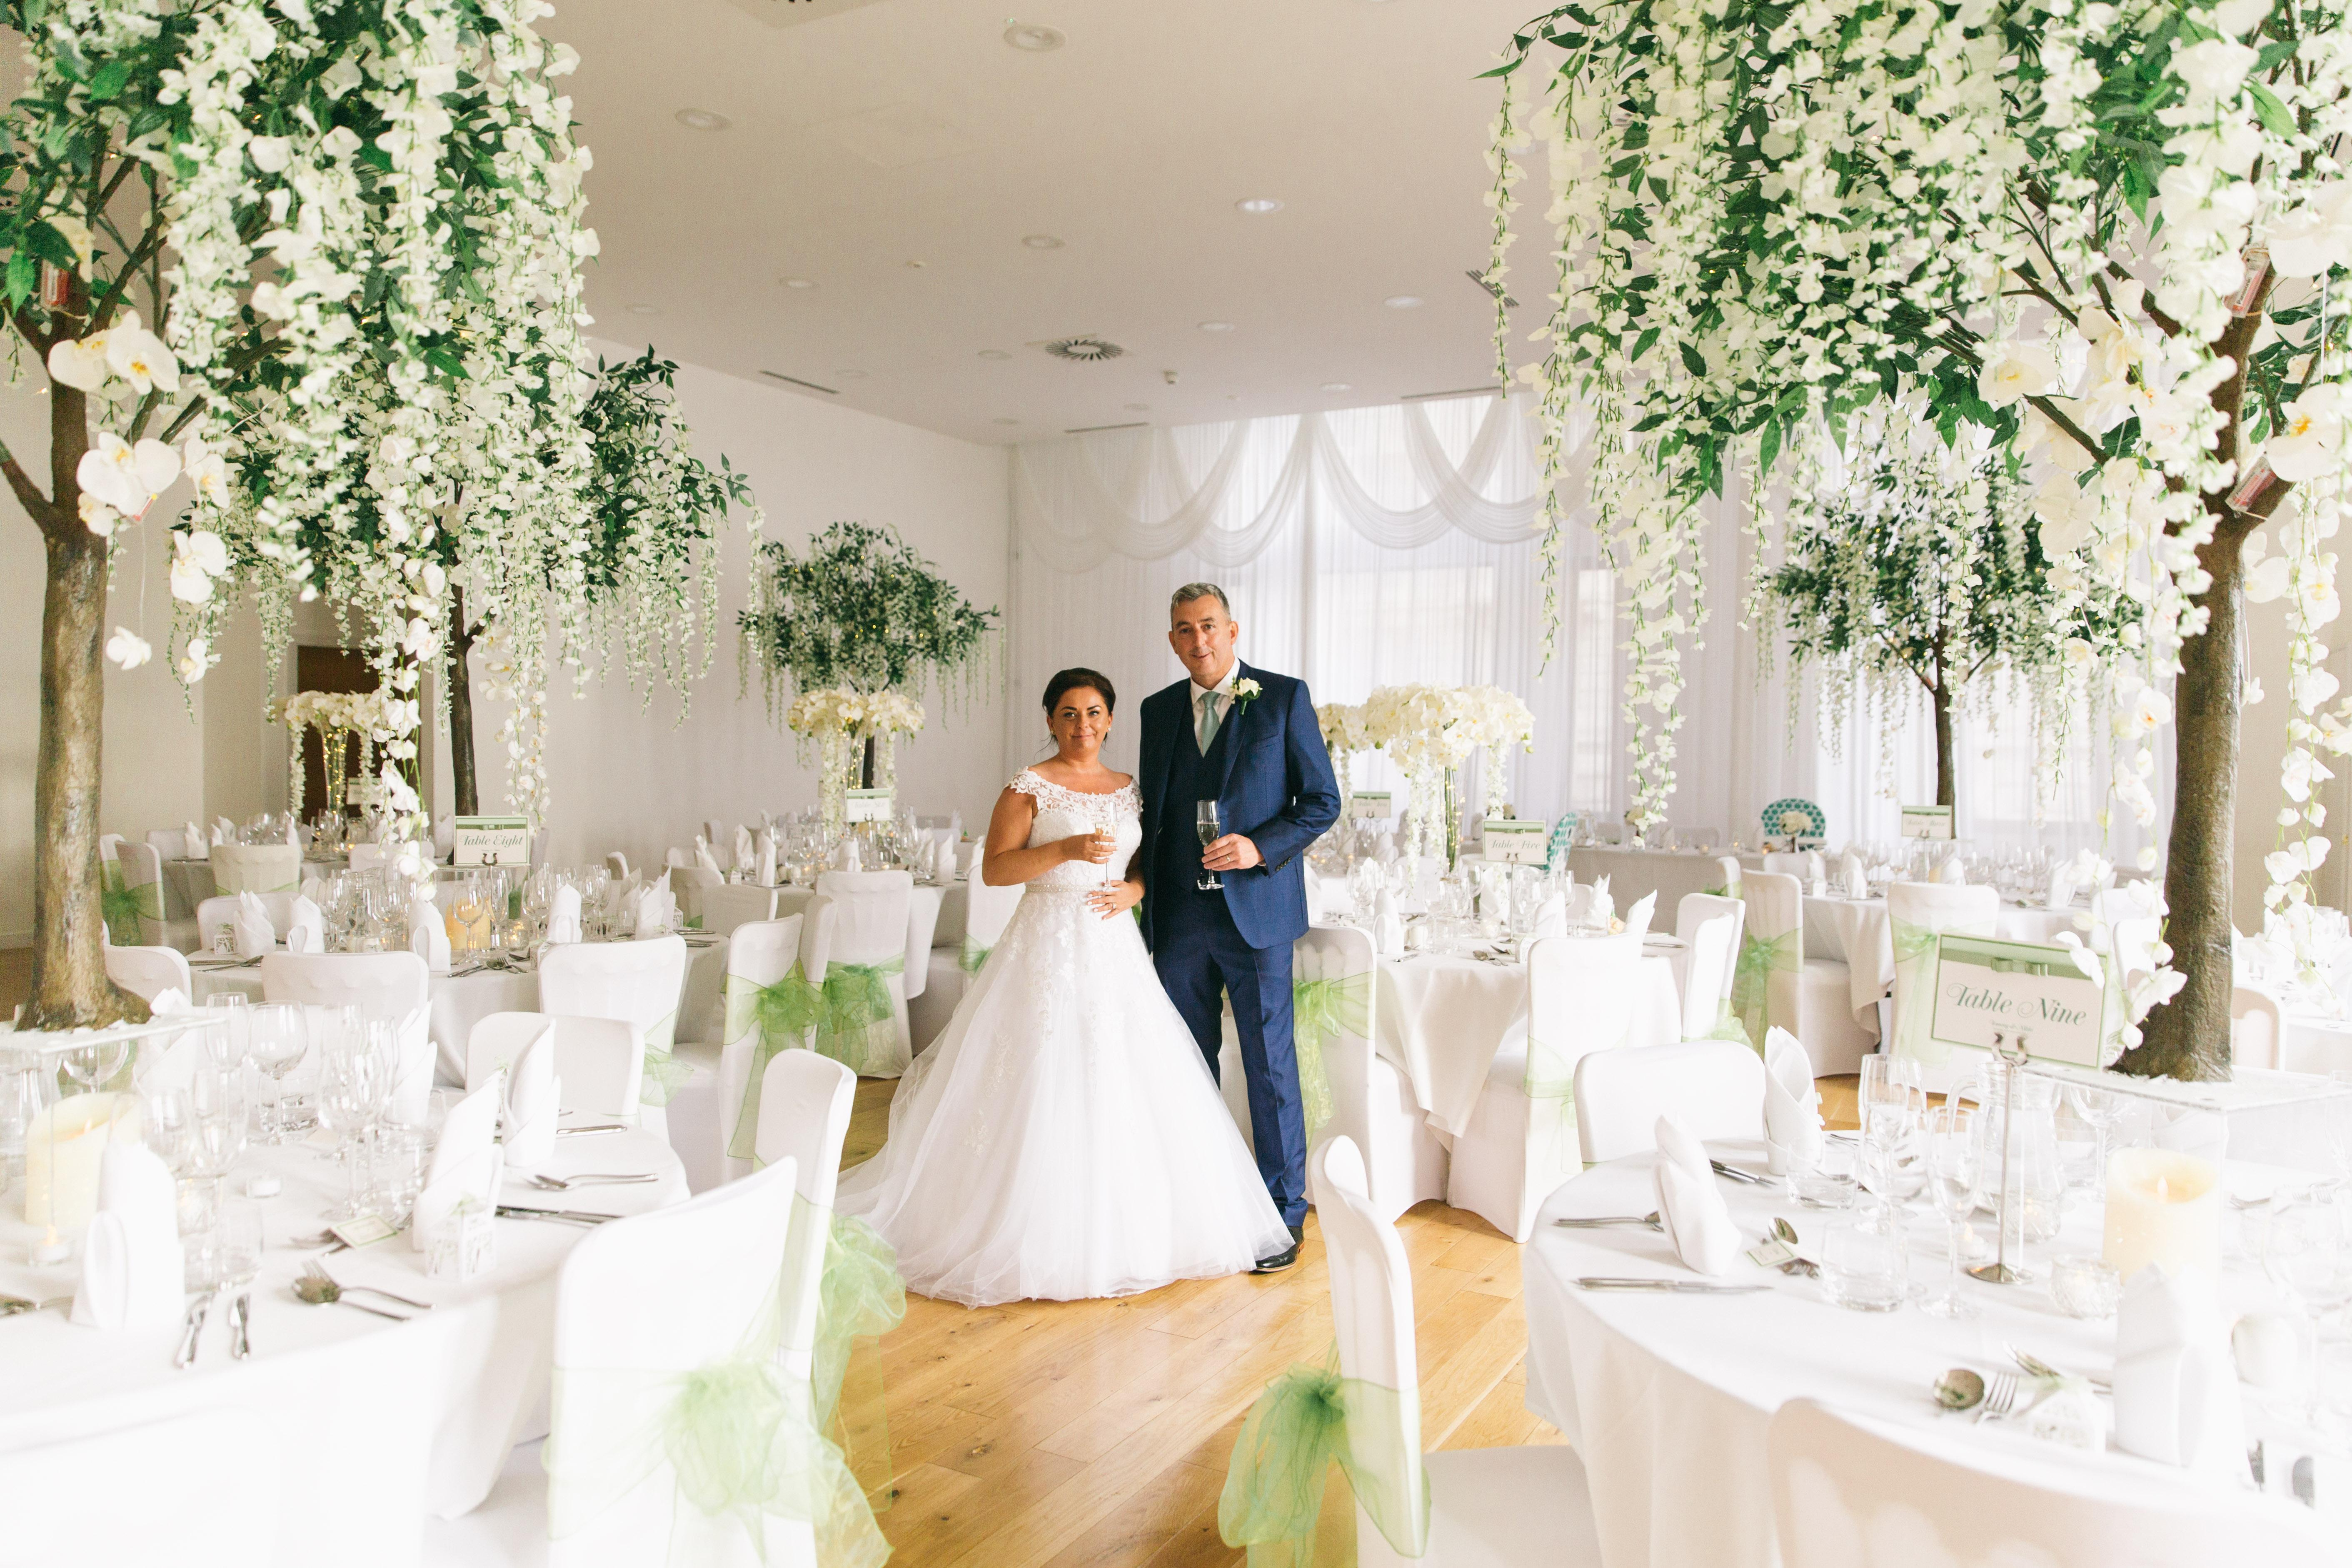 The Venue at The Royal Liver Building Wedding